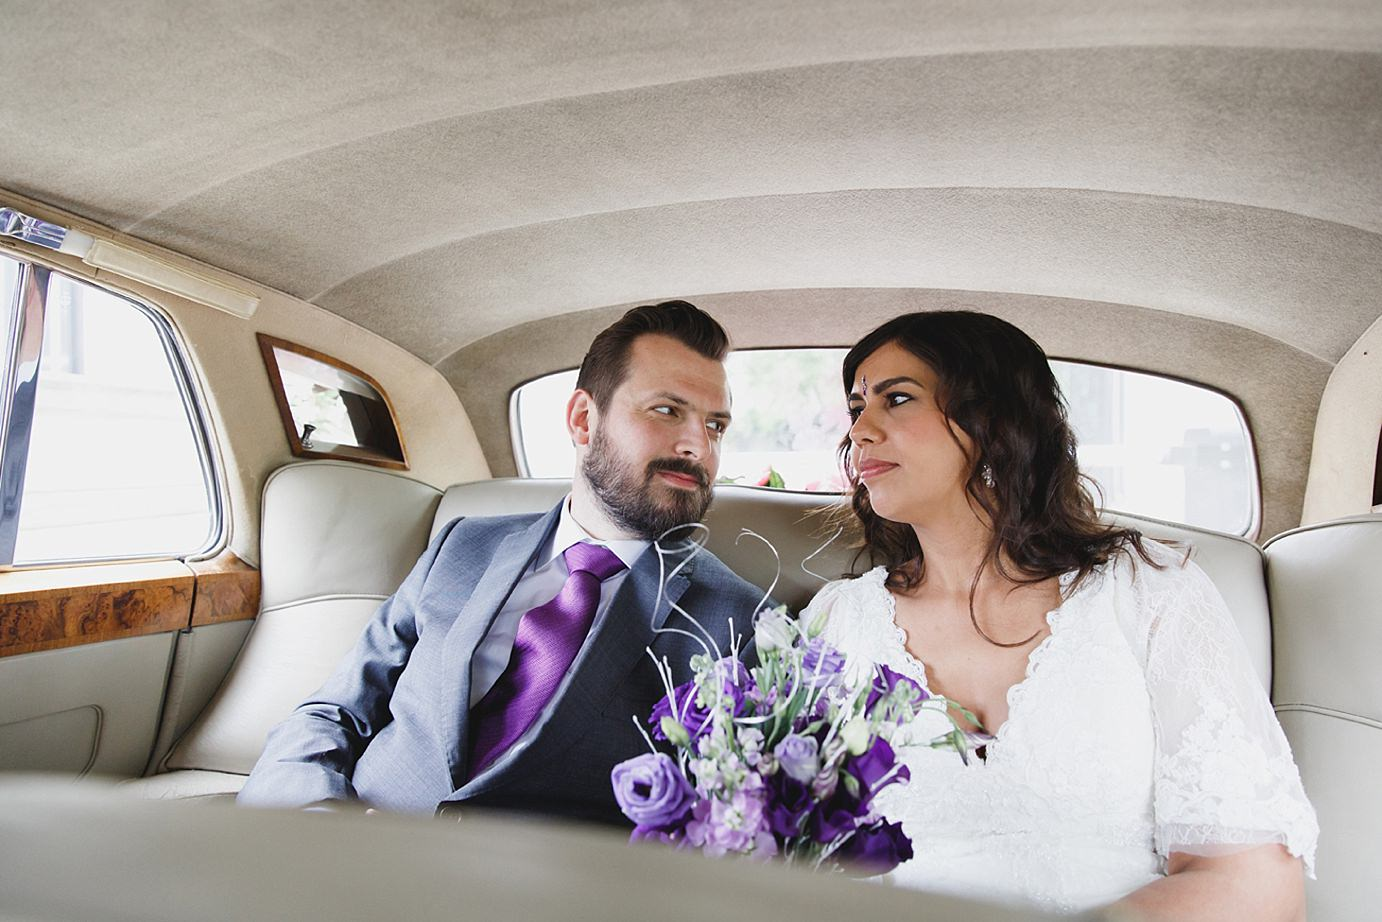 Londesborough pub wedding photography bride and groom inside wedding car